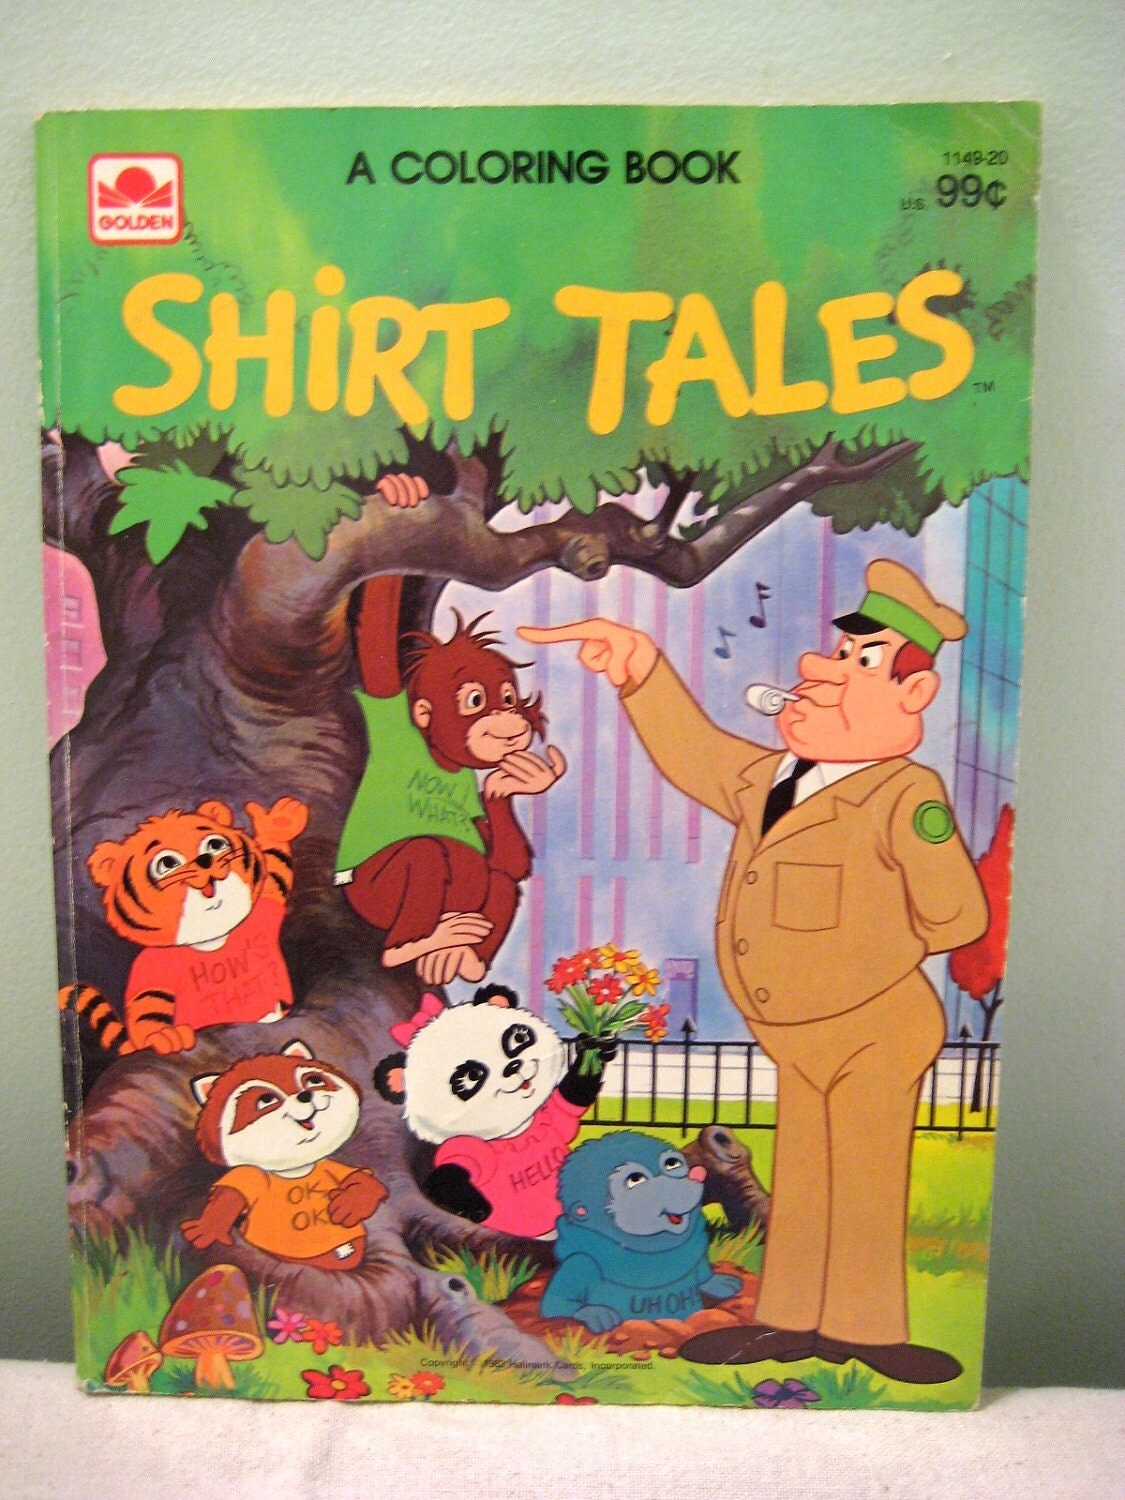 Vintage Shirt Tales Coloring Book